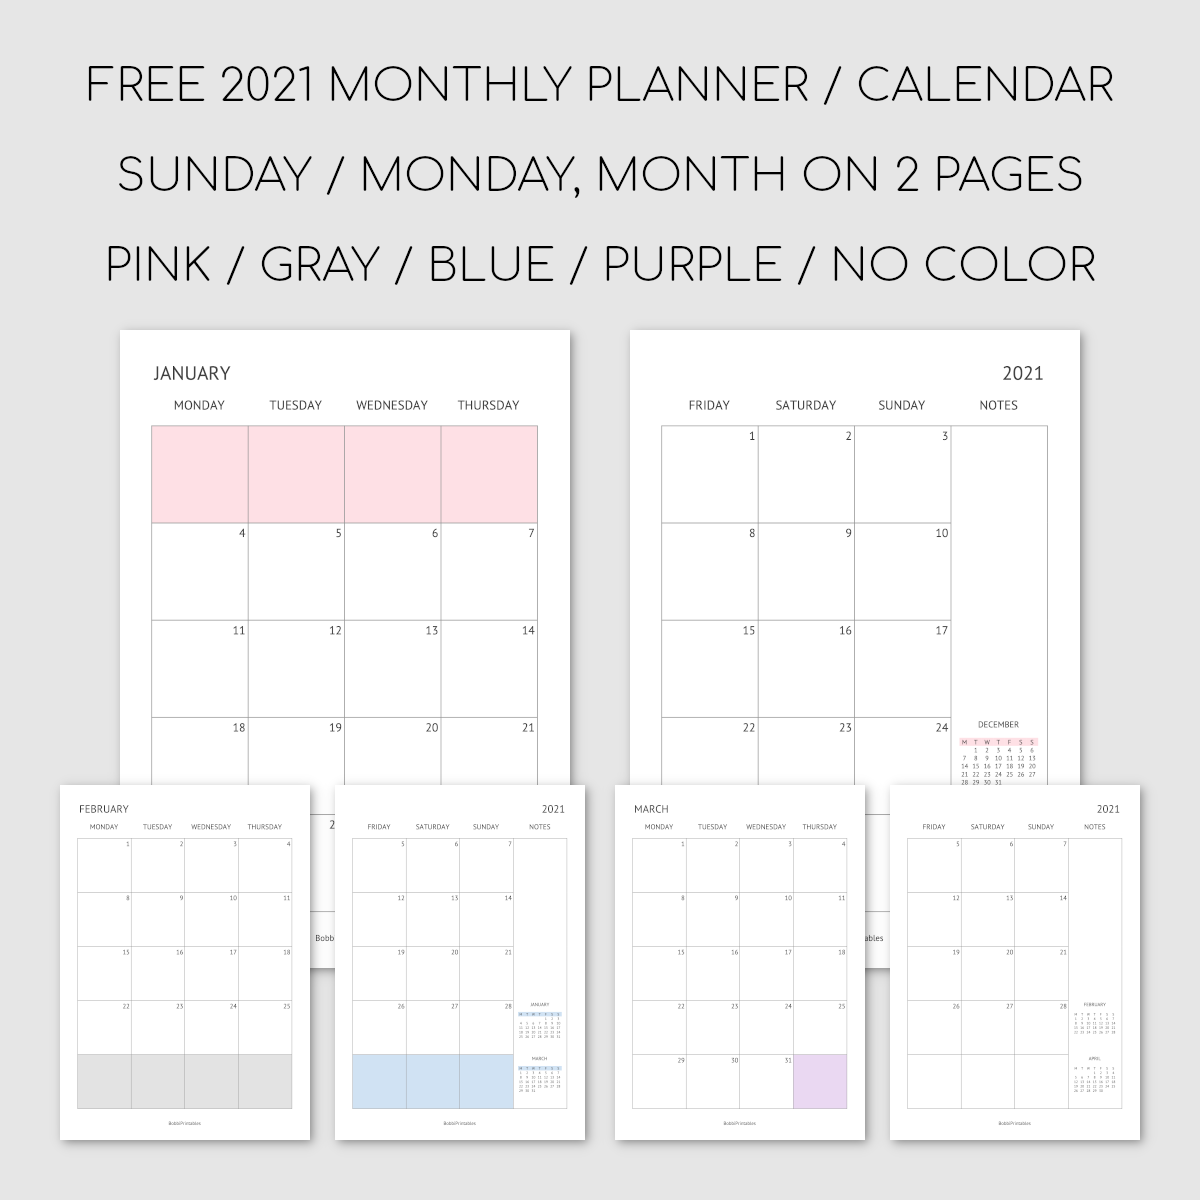 Printable 2021 Monthly Planner / Calendar - Month on 2 Pages